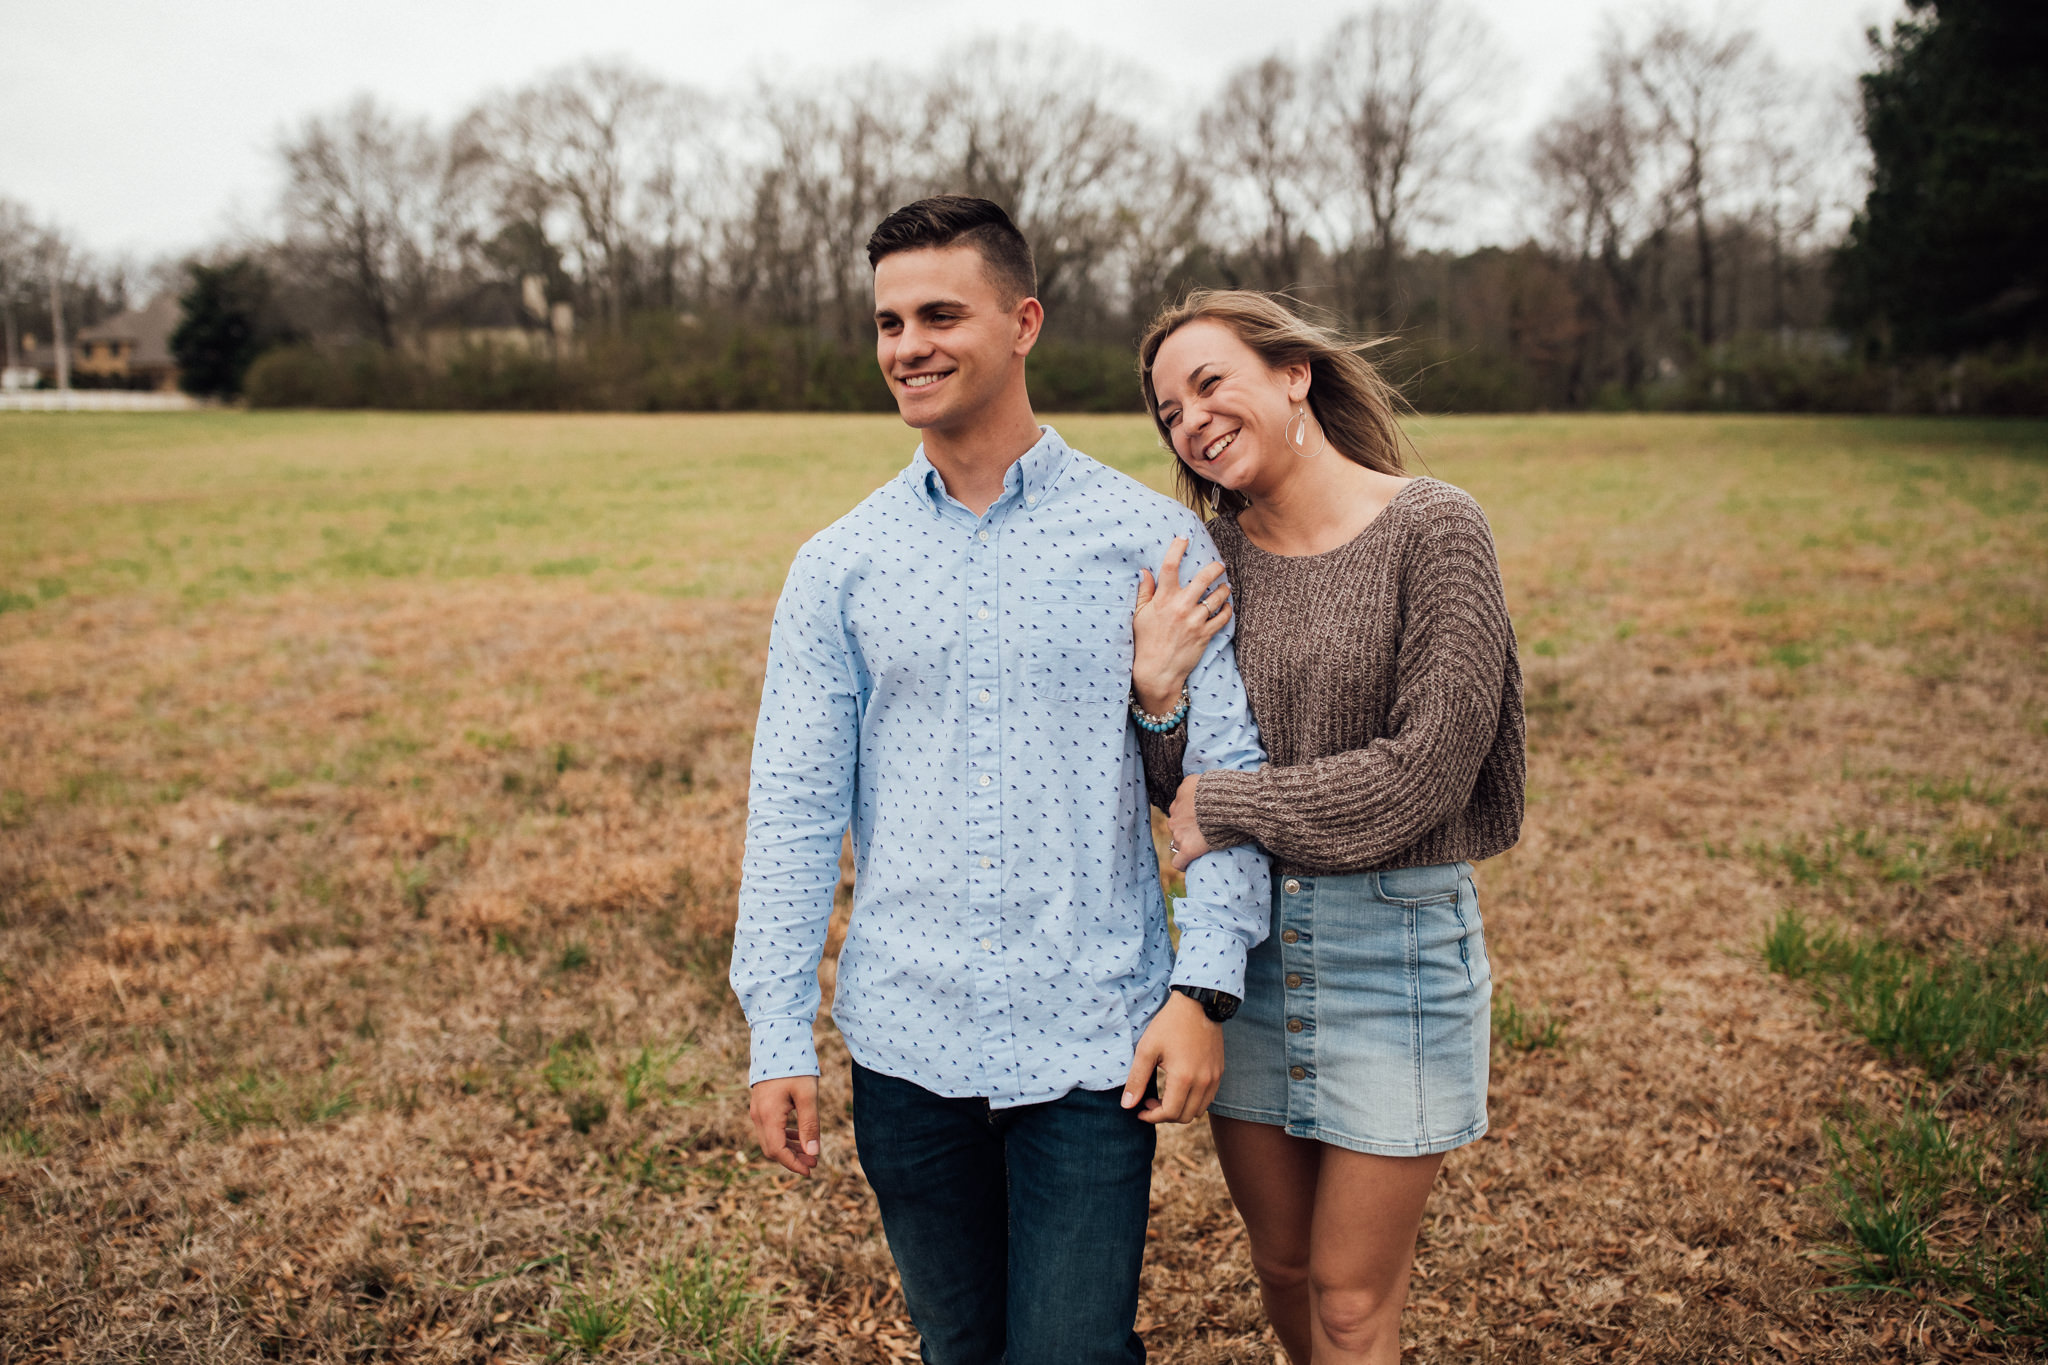 memphis-engagement-photographer-thewarmtharoundyou-greenhouse-engagement-pictures (67 of 118).jpg